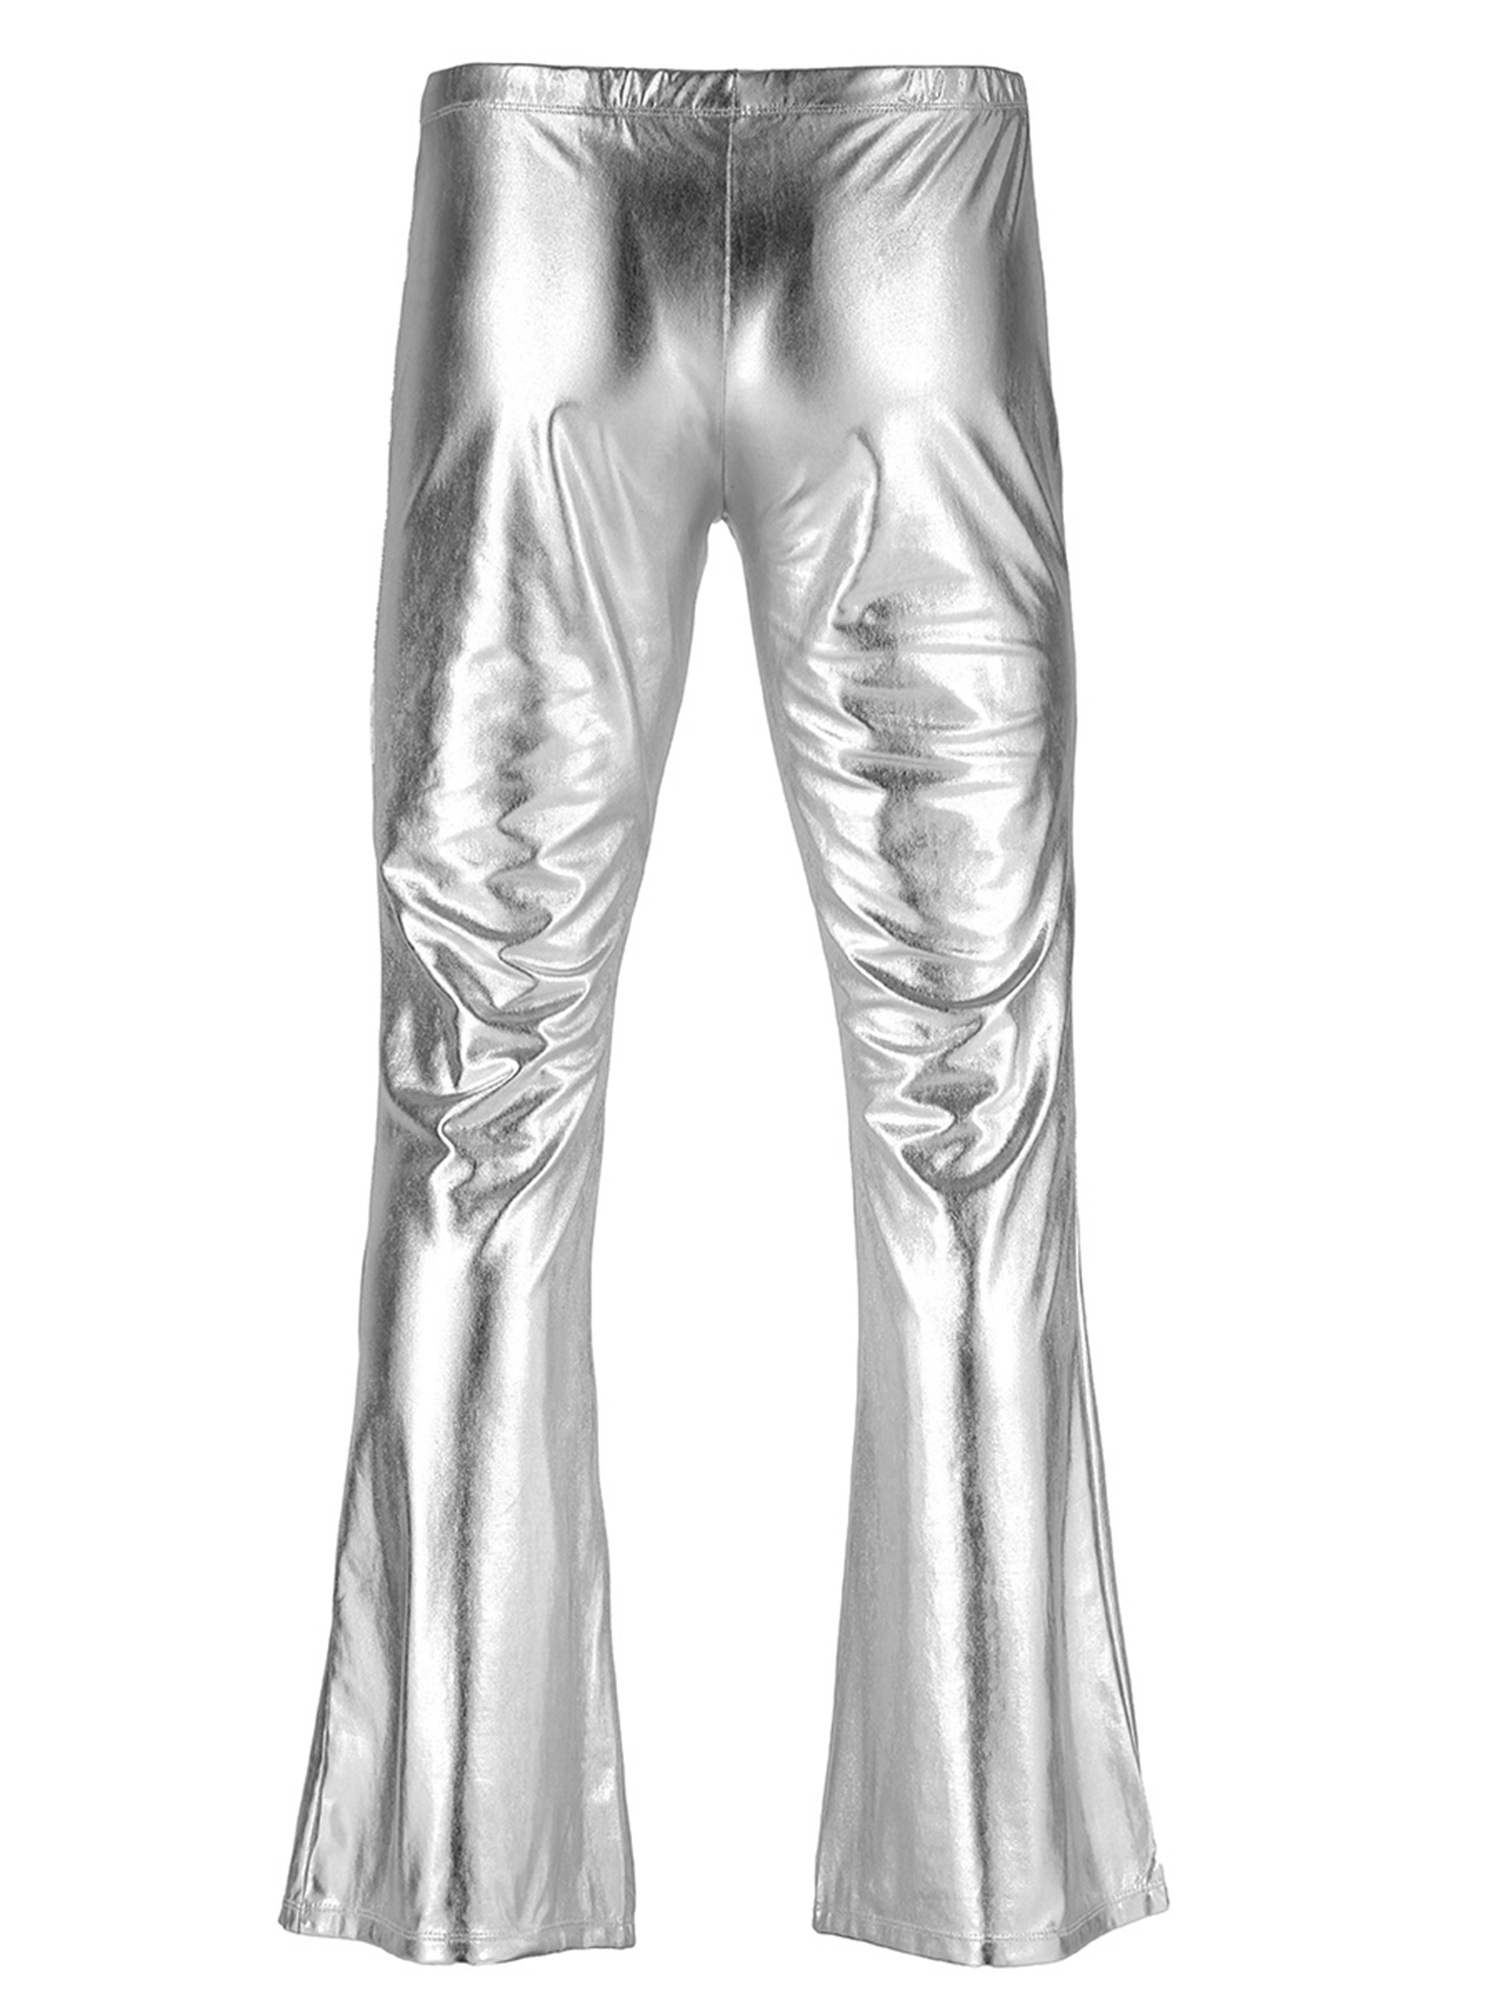 ChicTry Adults Mens Shiny Metallic Disco Pants with Bell Bottom Flared Long Pants Dude Costume Trousers for 70's Theme Parties 48